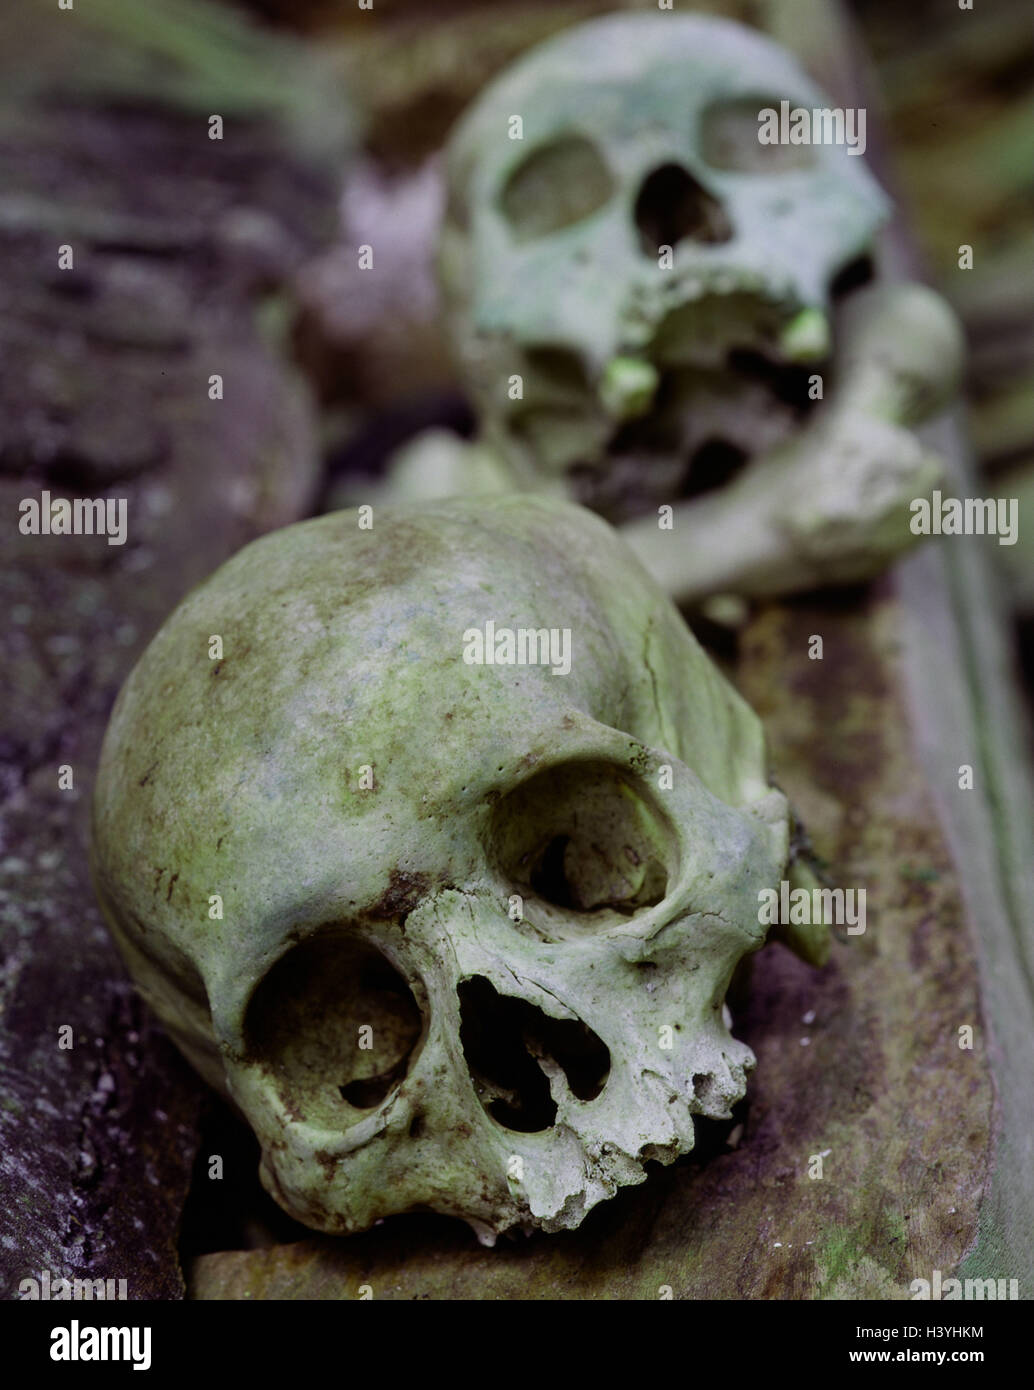 Indonesia, Kete-Kesu, goal nanny's tomb, detail, dead person's skull, South-East Asia, island state, Celebes, - Stock Image